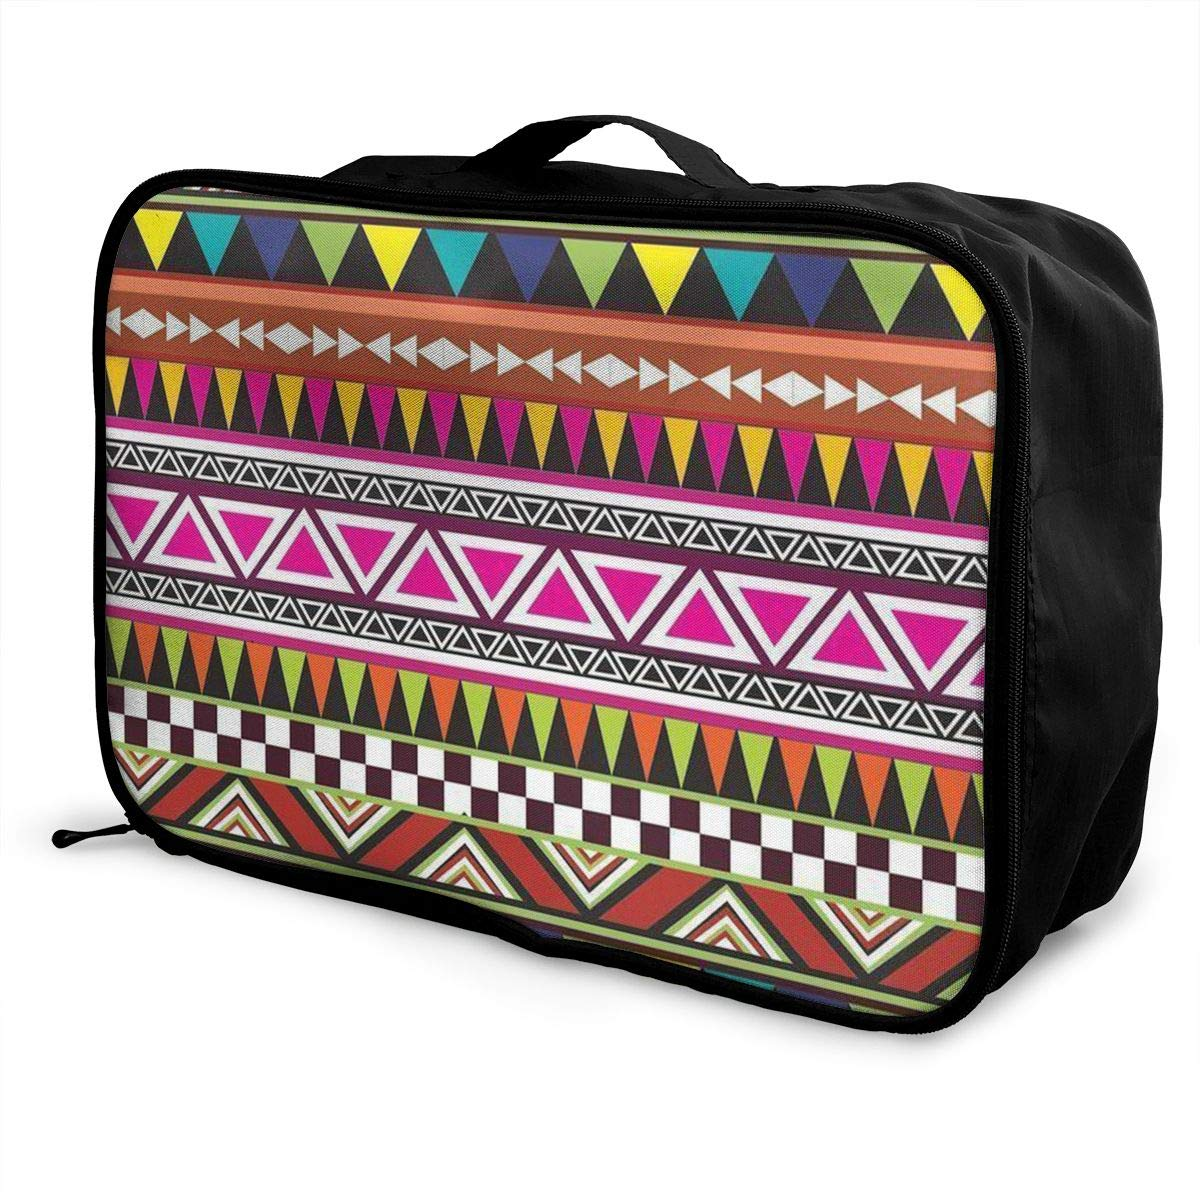 ADGAI A Variety of Geometric Patterns Canvas Travel Weekender Bag,Fashion Custom Lightweight Large Capacity Portable Luggage Bag,Suitcase Trolley Bag